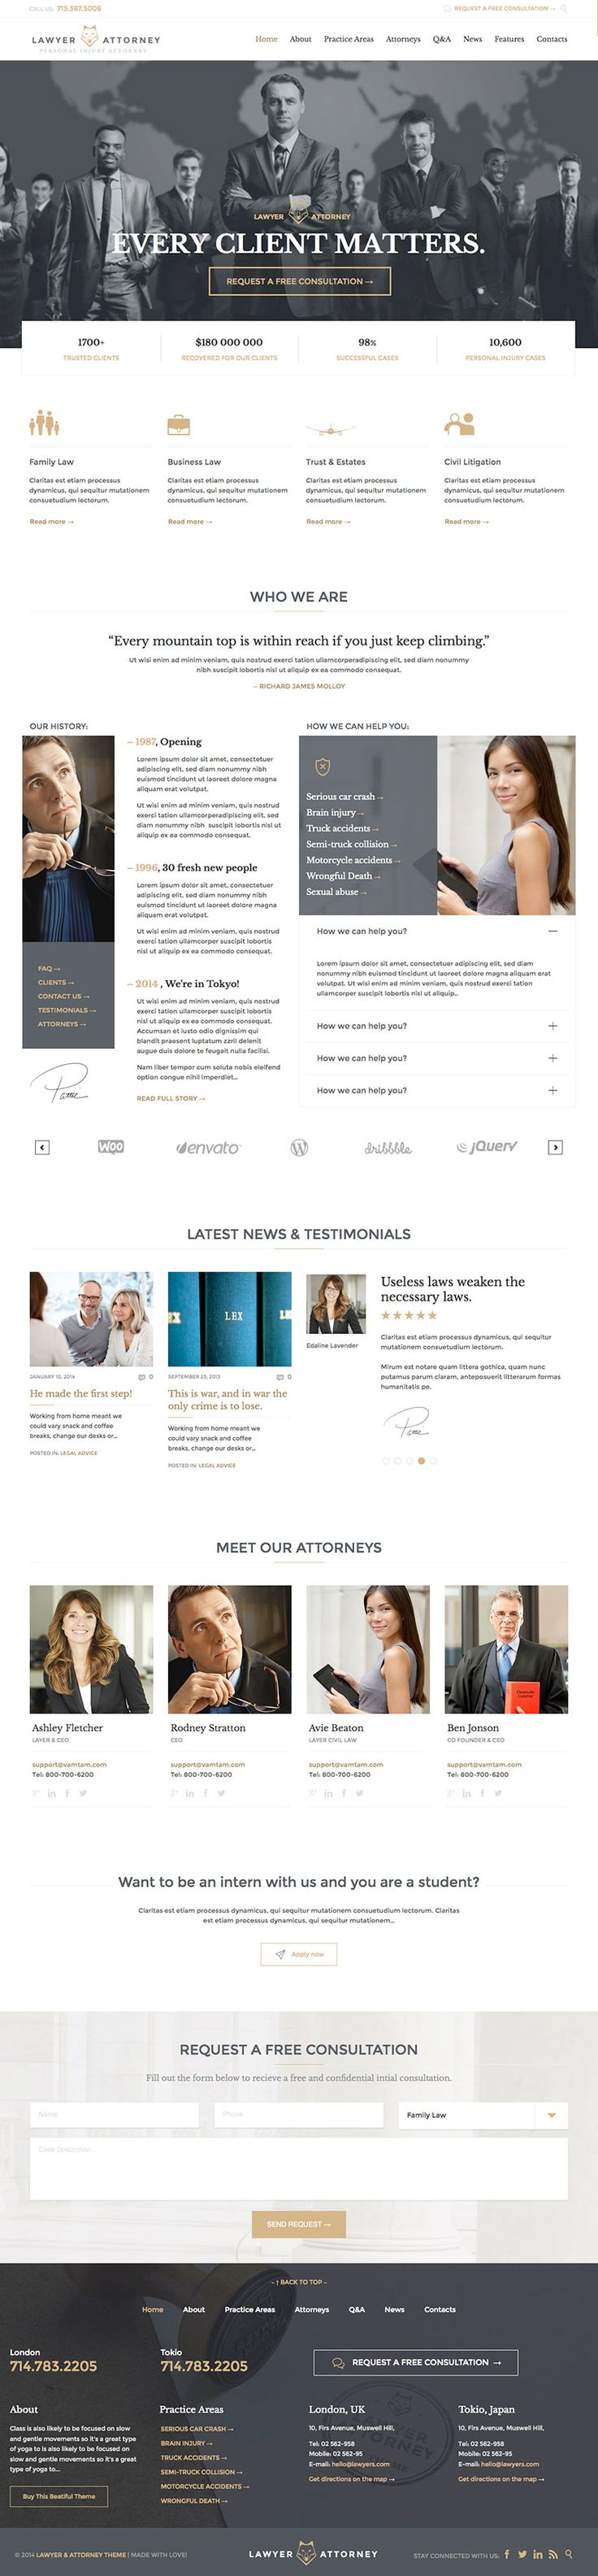 Lawyers Attorney Legal Office is a professional business style premium WordPress theme for any firm with easy to use features for your law & legal website. - WPExplorer